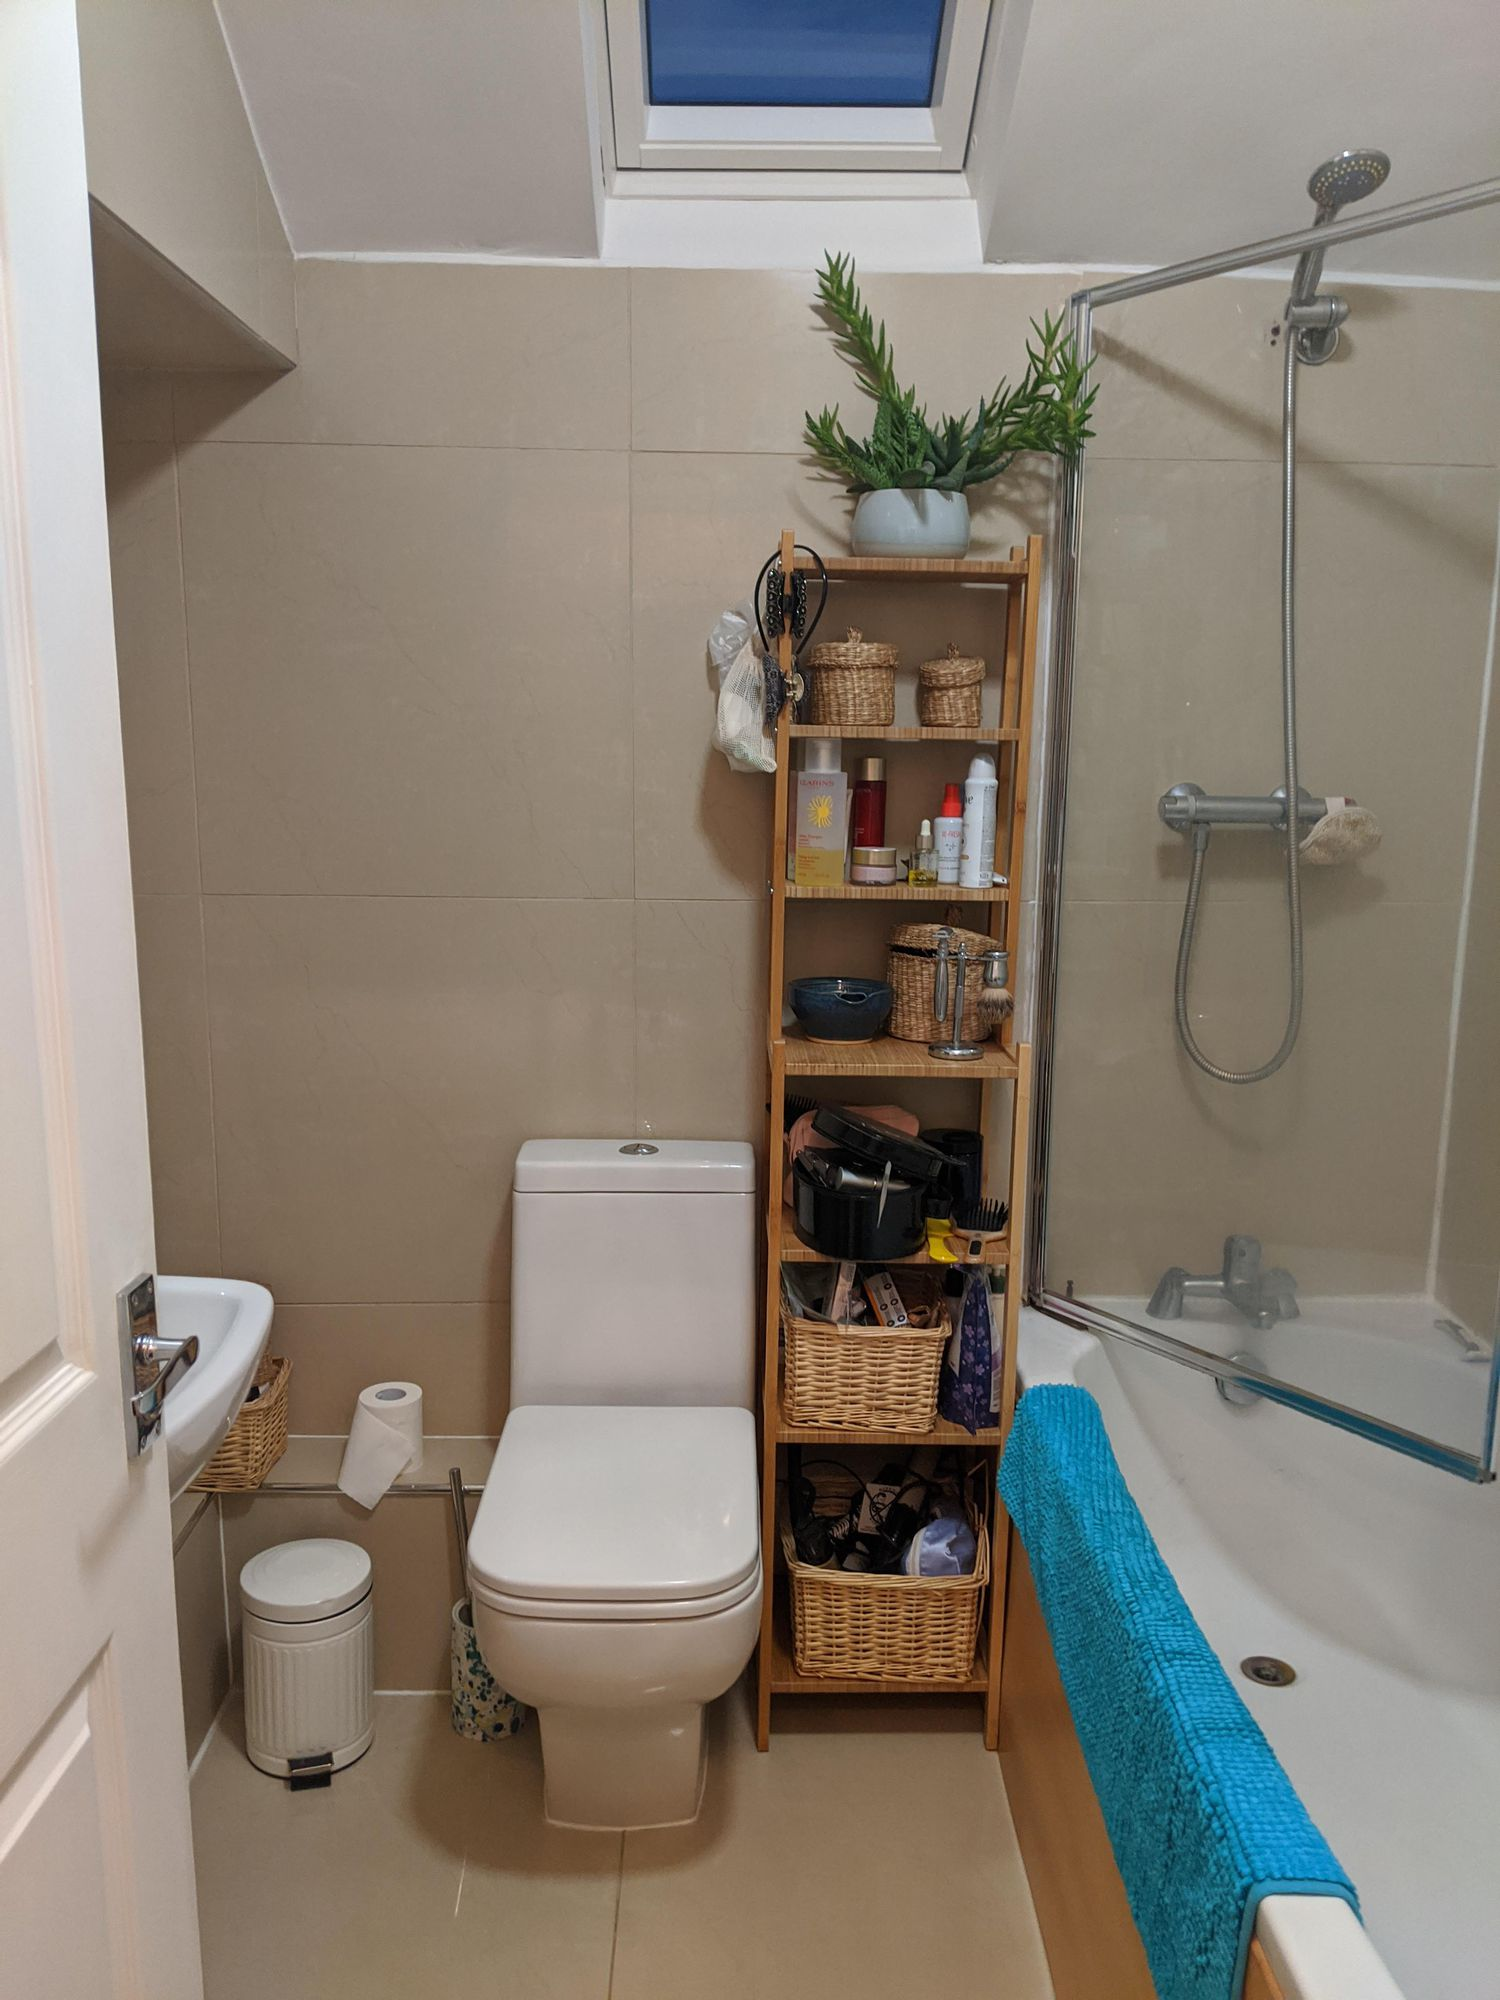 The same view before any work was done, showing the beige tiles and a lack of good storage.